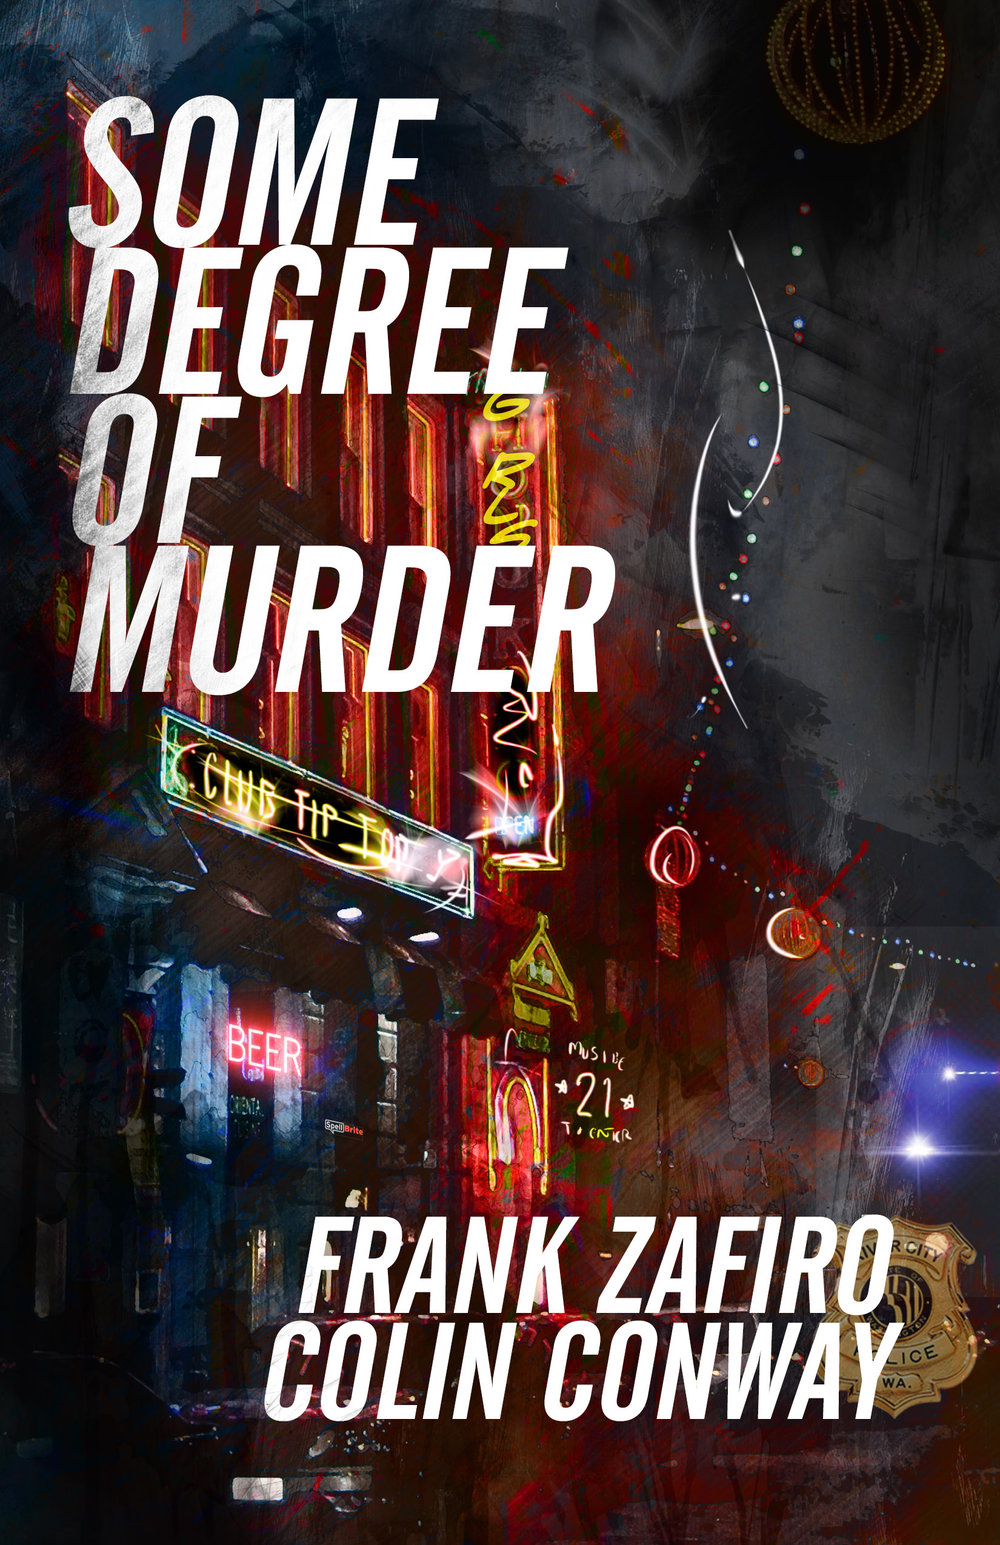 cover-zafiro-conway-some-degree-murder-front.jpg